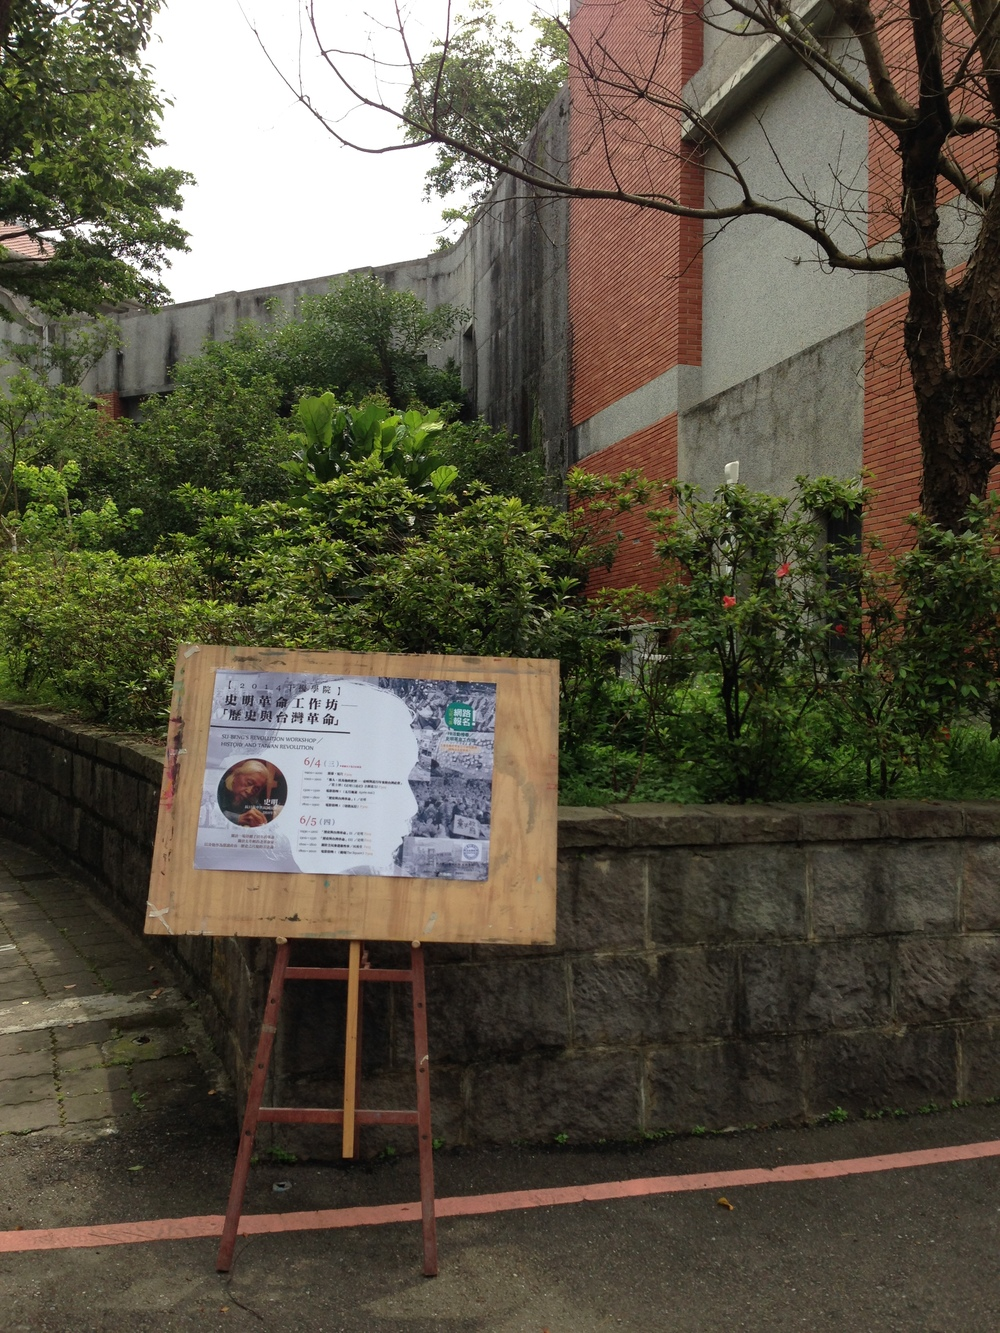 Signage for  Su Beng's Revolution Workshop/History and Taiwan Revolution  at the Taipei National University of the Arts.